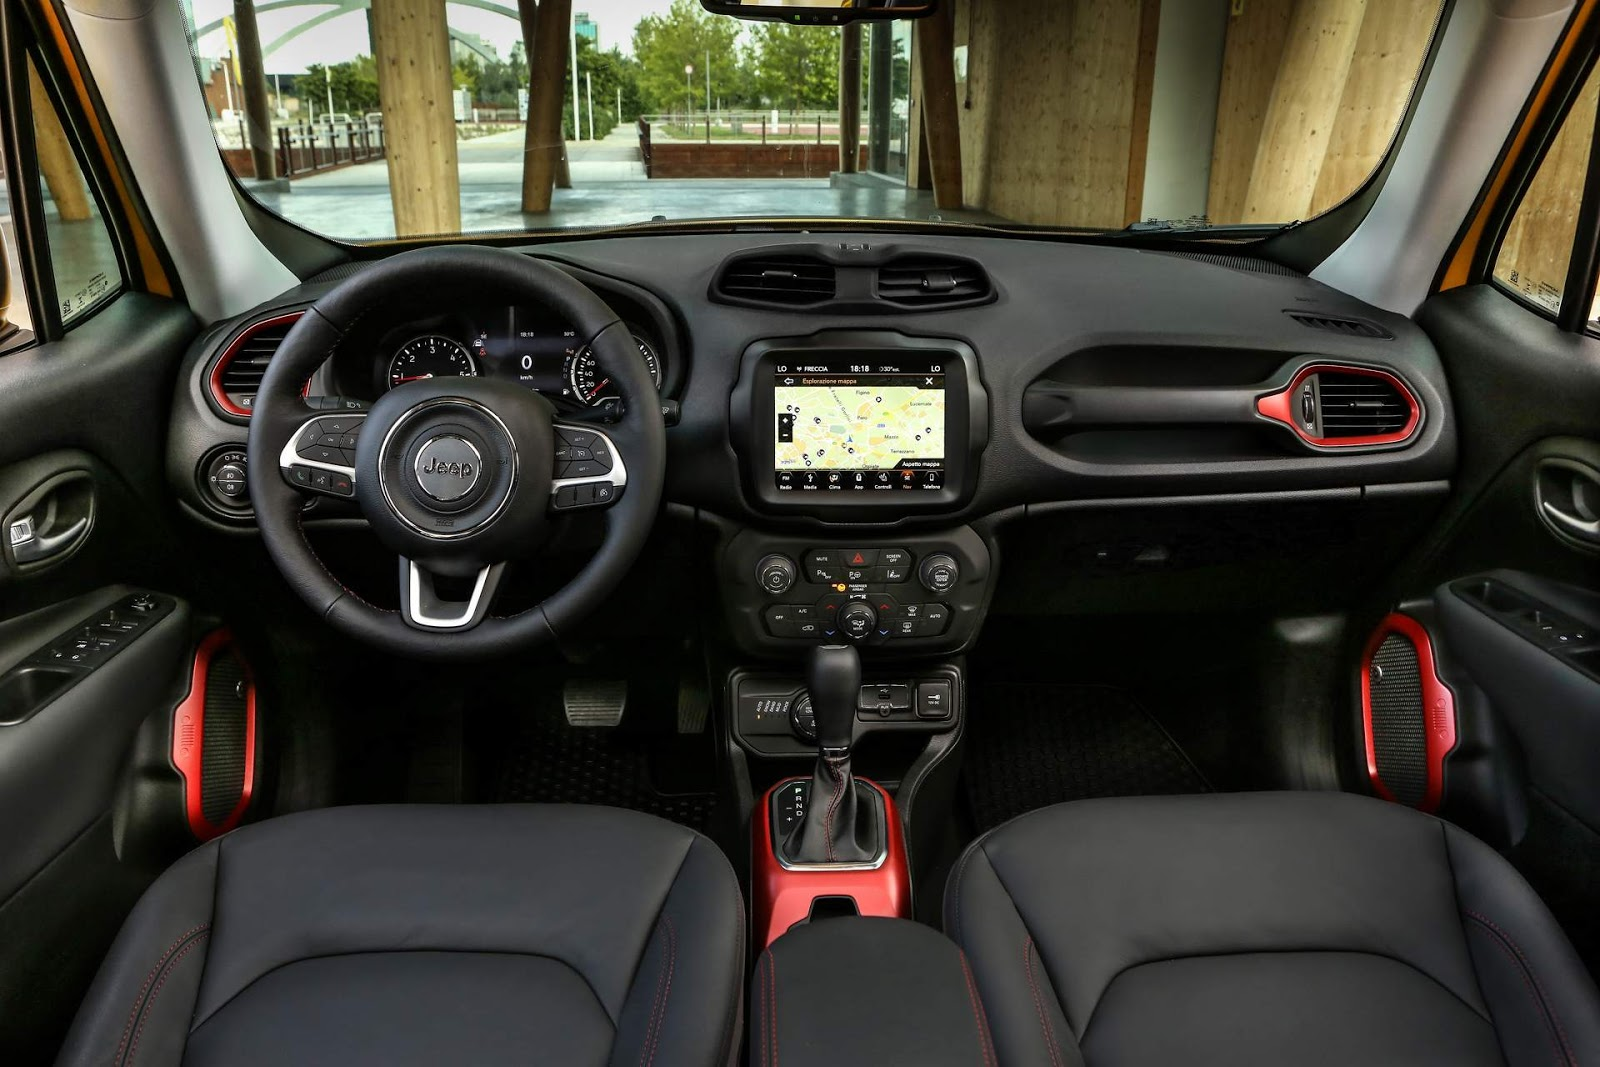 jeep renegade trailhawk 2019 fotos e detalhes oficiais car blog br. Black Bedroom Furniture Sets. Home Design Ideas